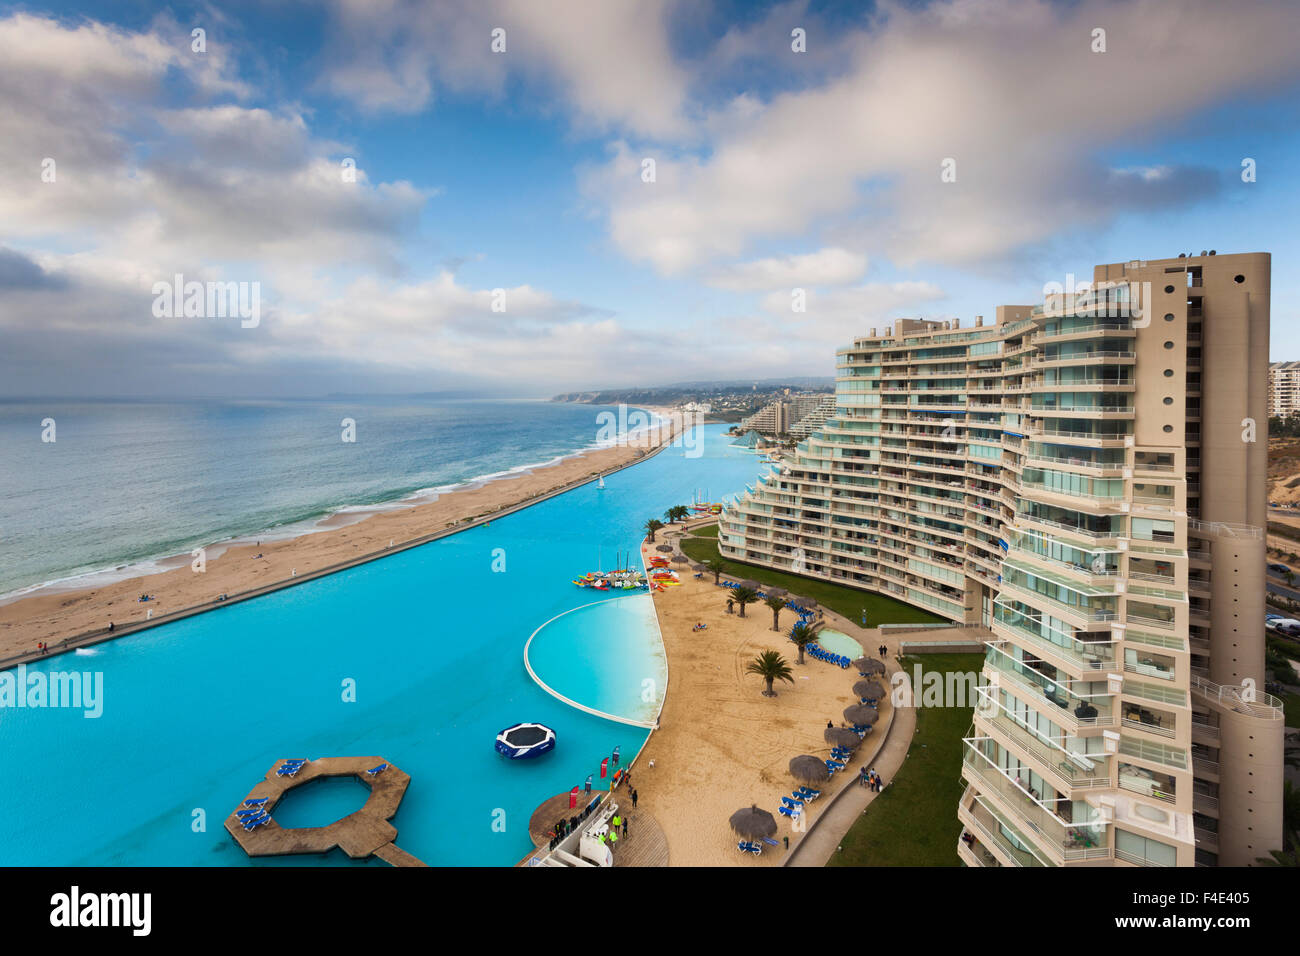 Chile algarrobo san alfonso del mar resort has the world 39 s largest stock photo royalty free for San alfonso del mar swimming pool